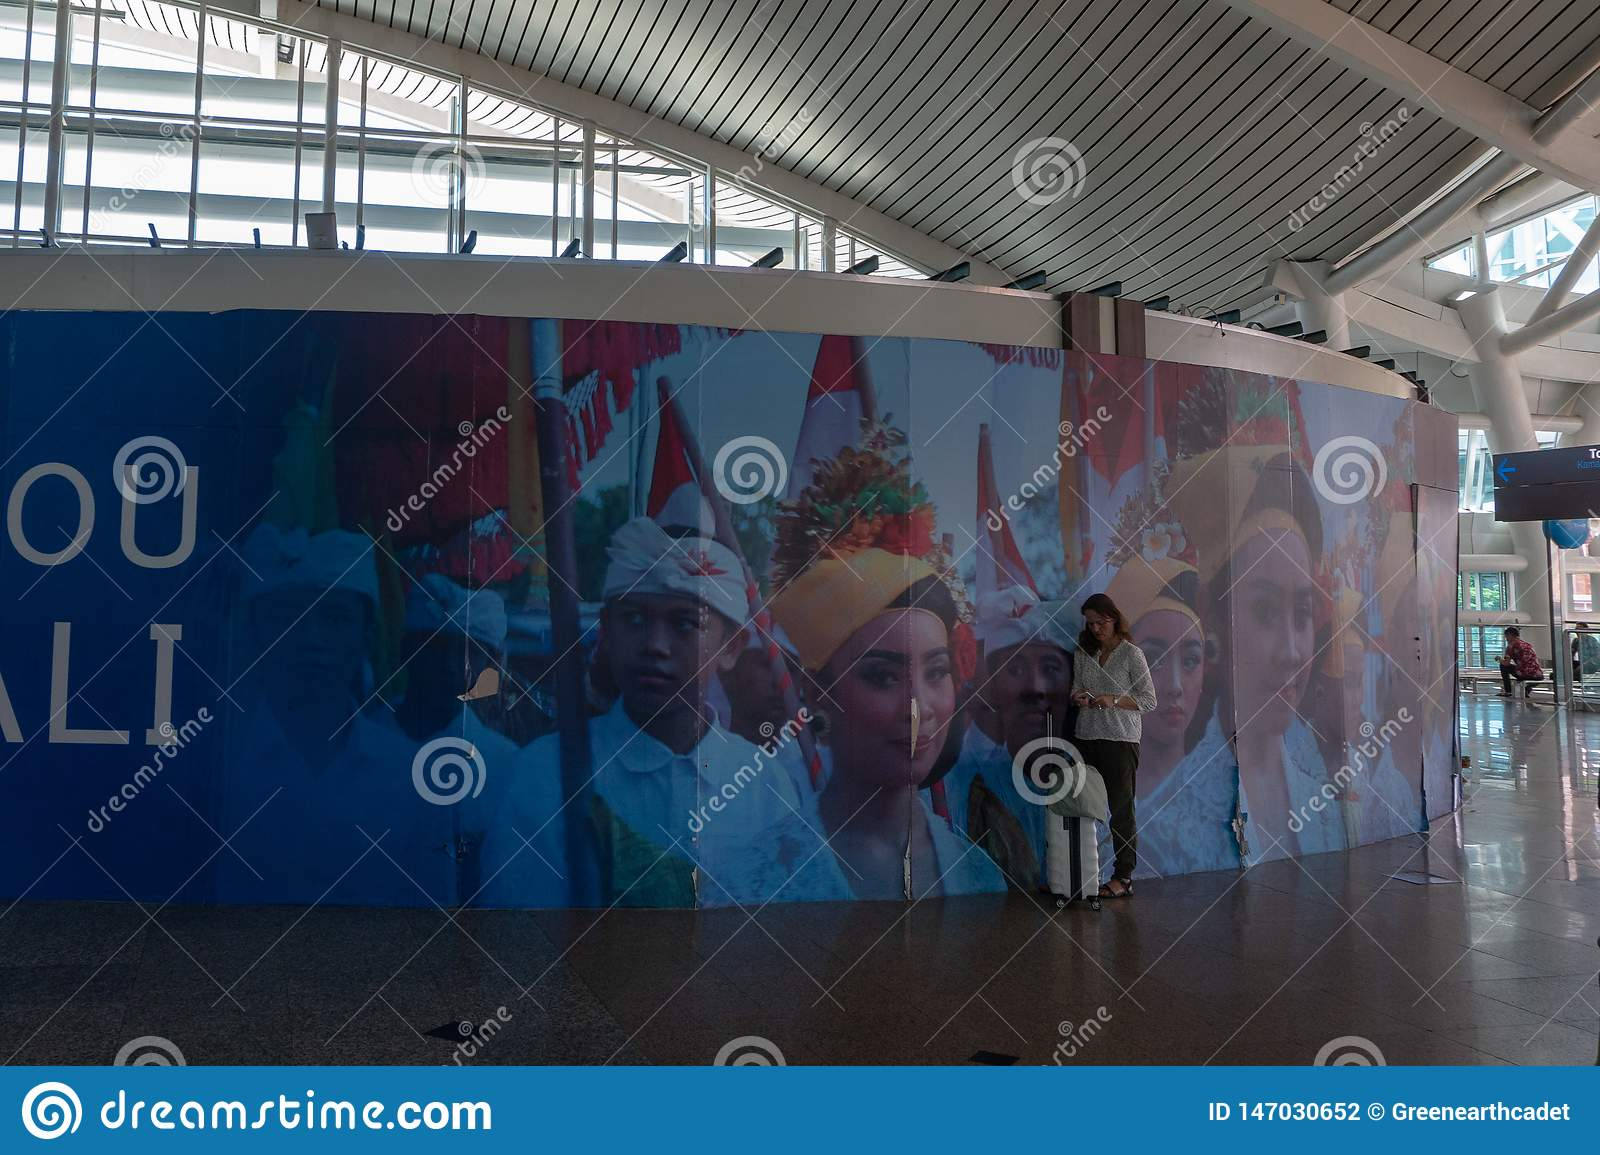 BADUNG/BALI-MARCH 28 2019: A female tourist, carrying a suitcase, was standing in an area in a Balinese ornamental airport,